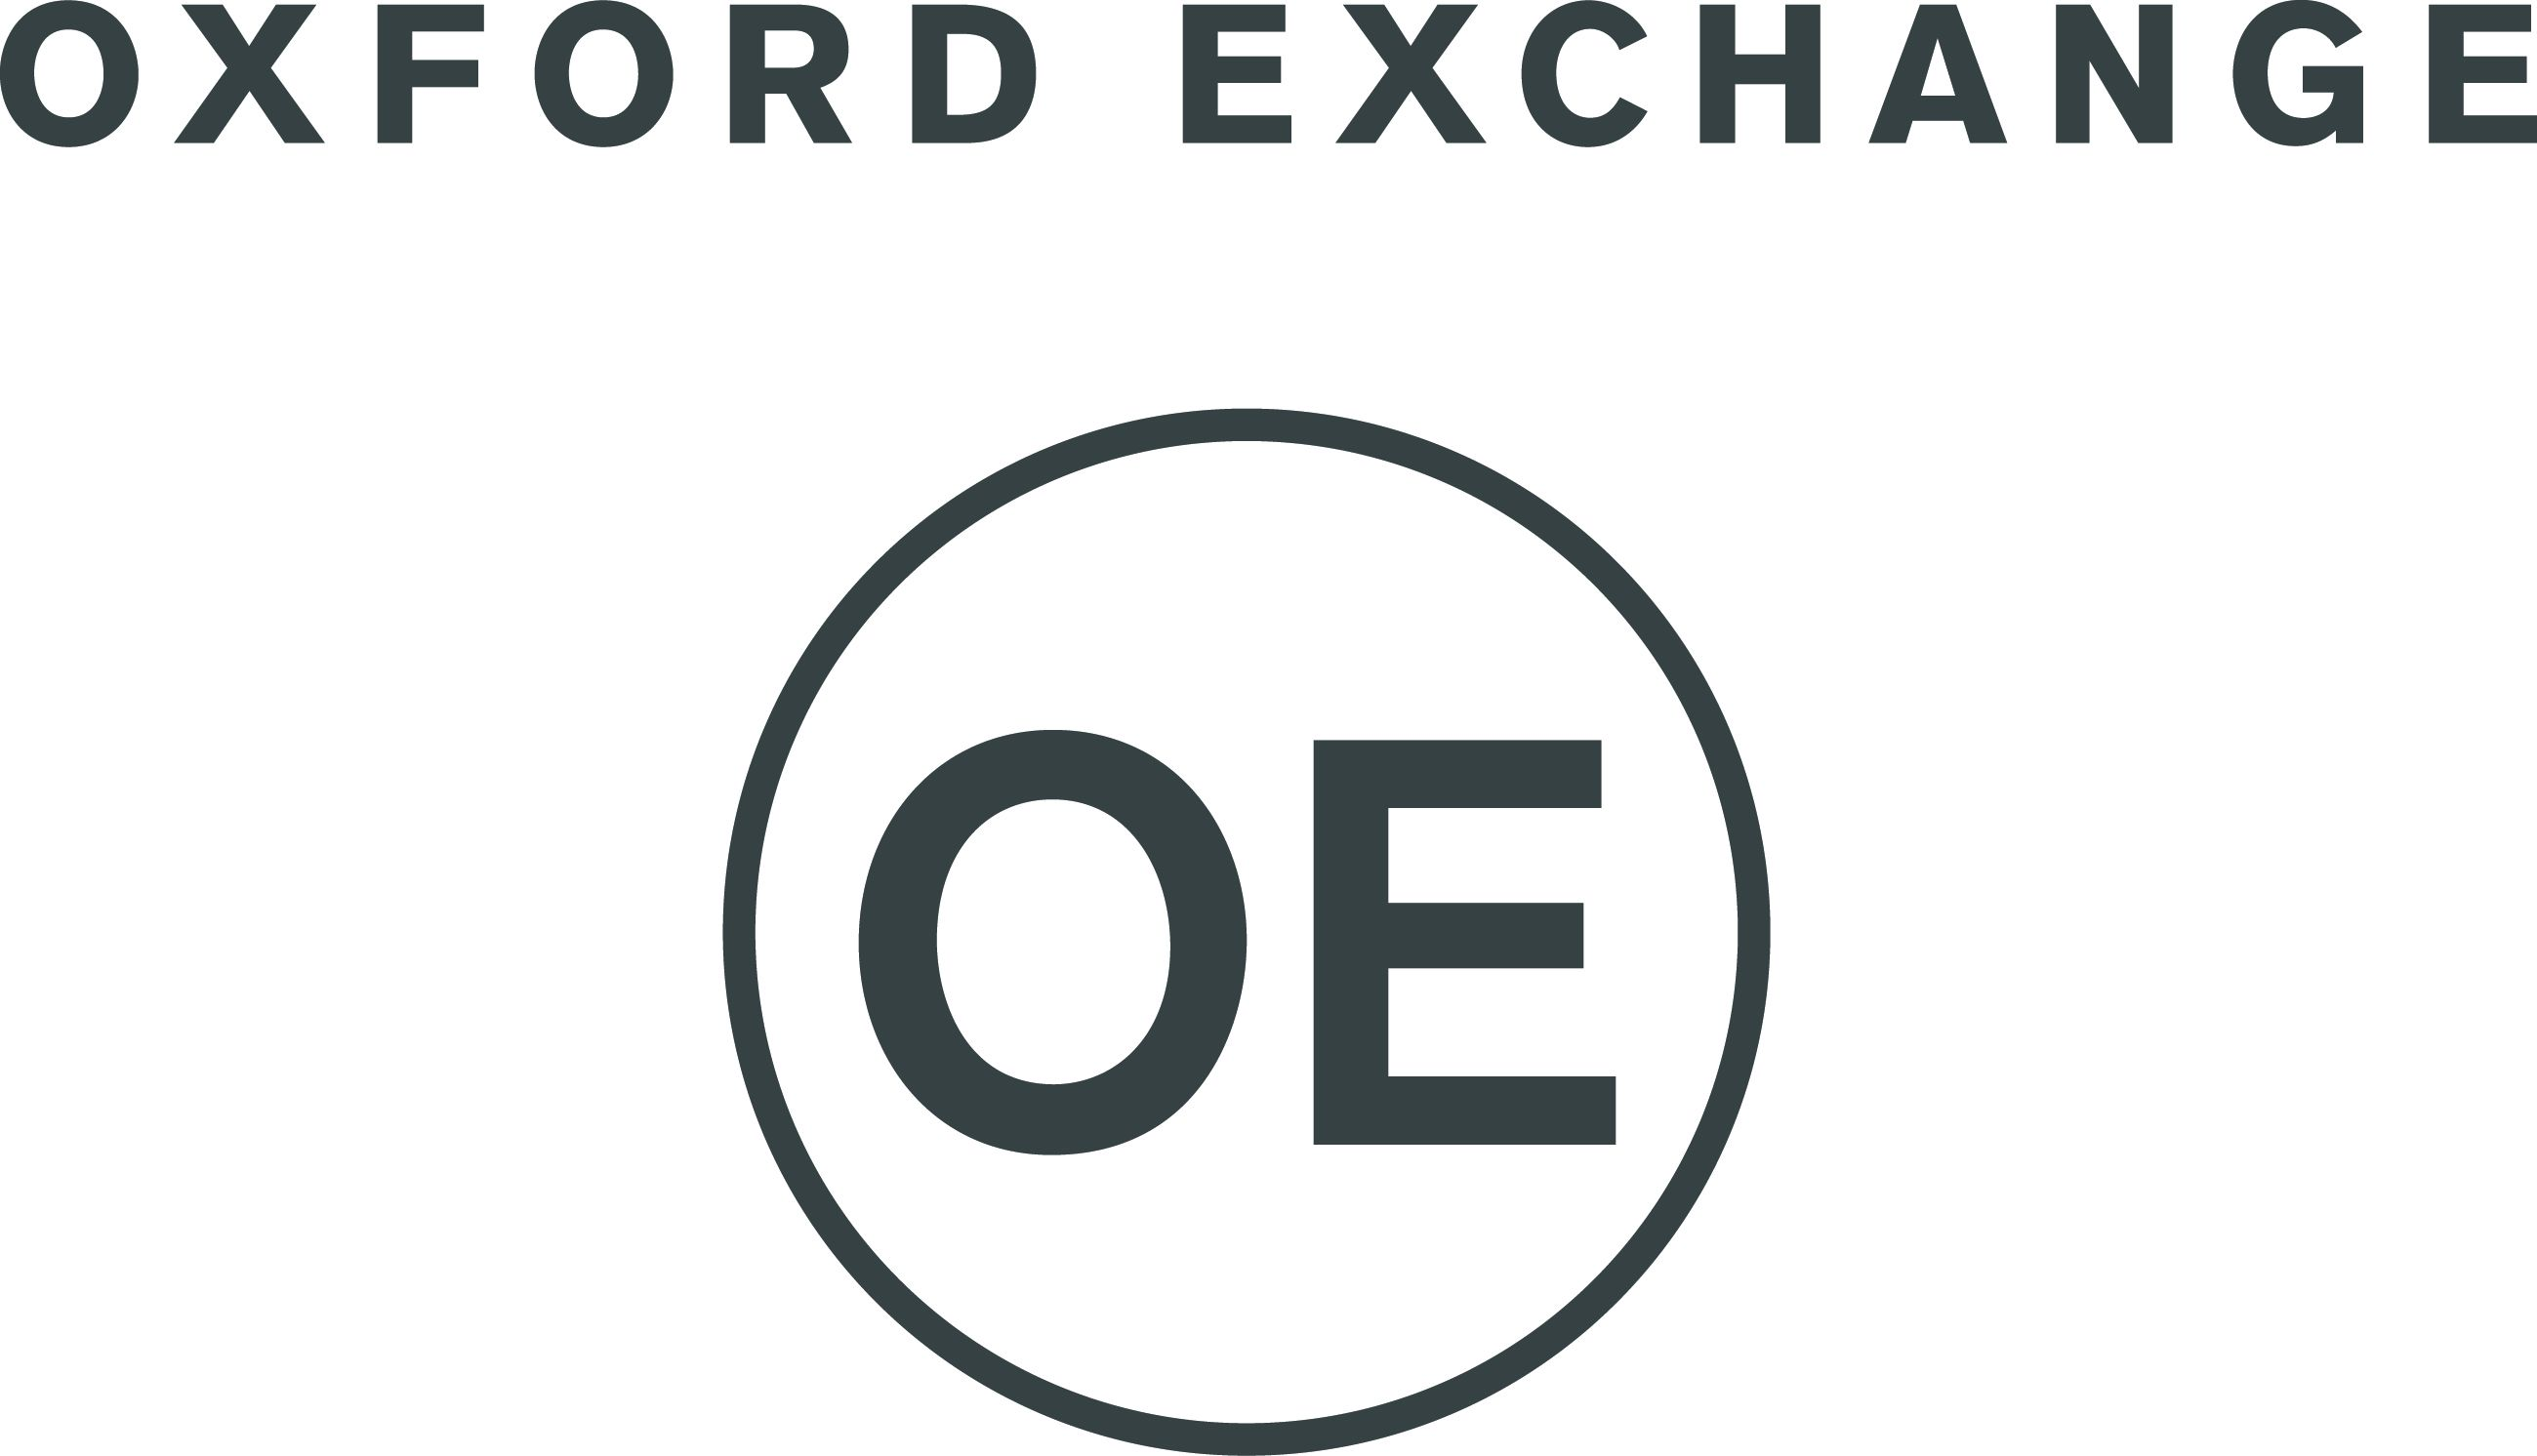 Oxford Exchange